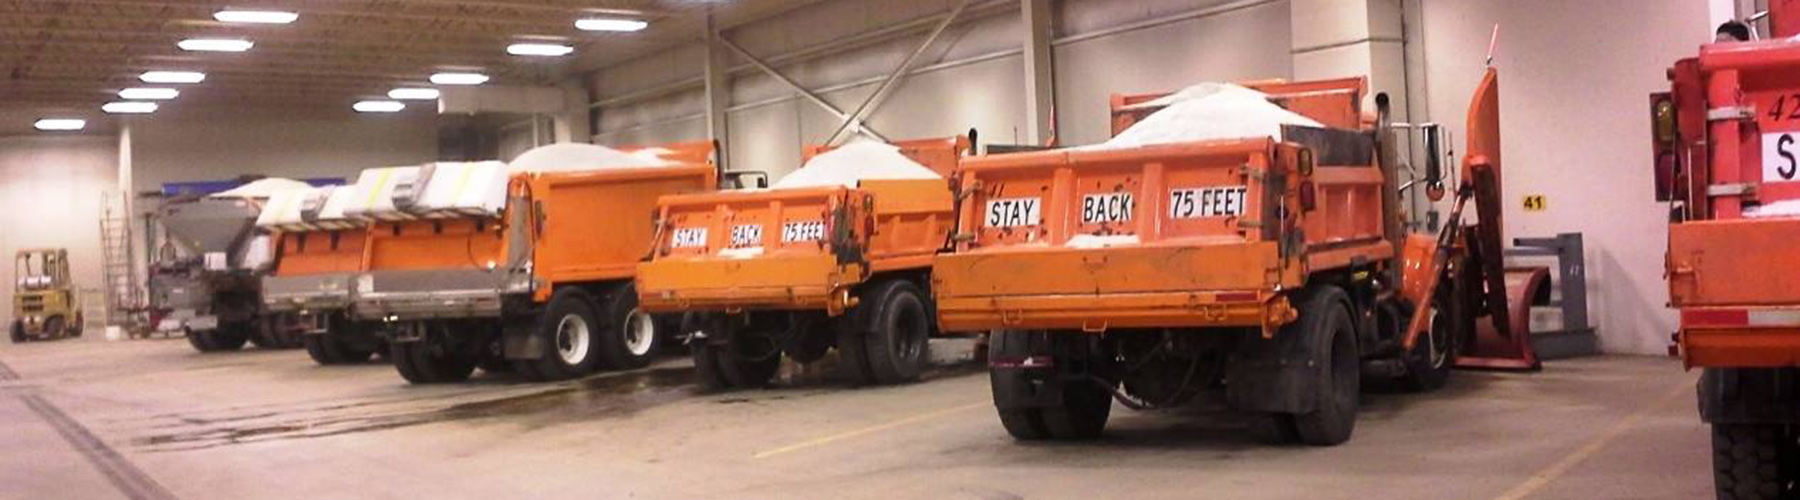 Line of Parked Snow Plows